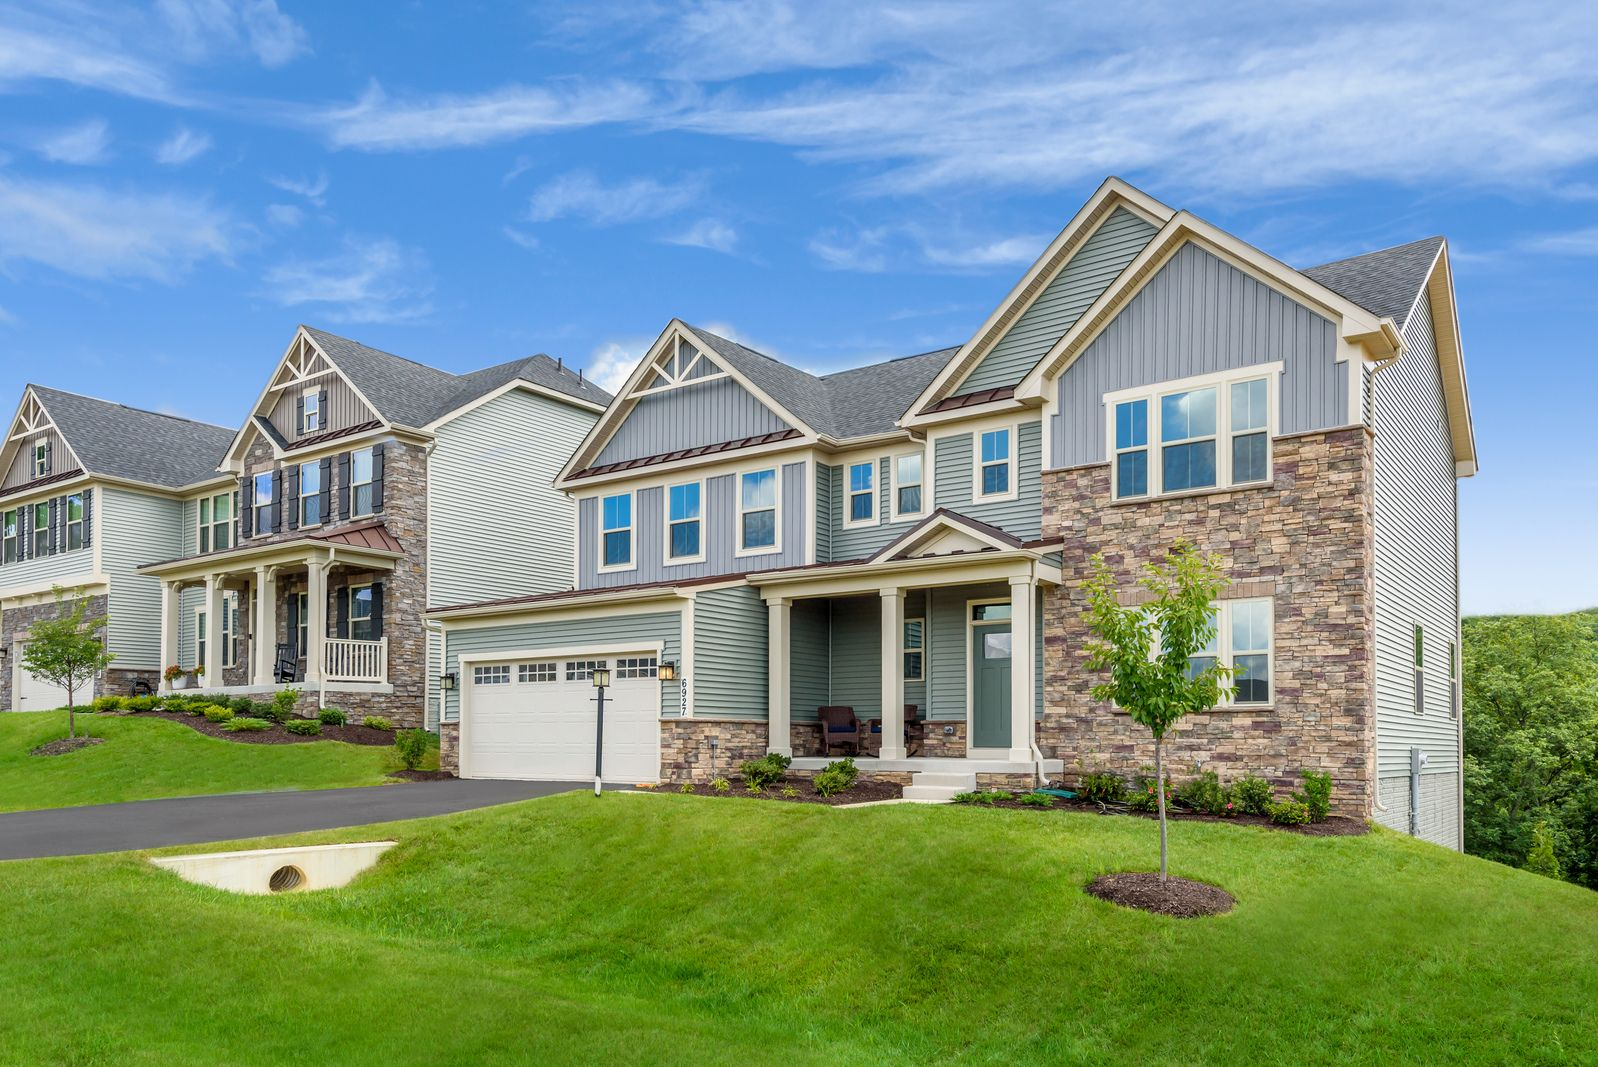 WELCOME TO LAKE LINGANORE WOODRIDGE:Life at Lake Linganore Woodridge is just what you have been looking for - tranquility and convenience. From the $480s.Schedule your visit today!